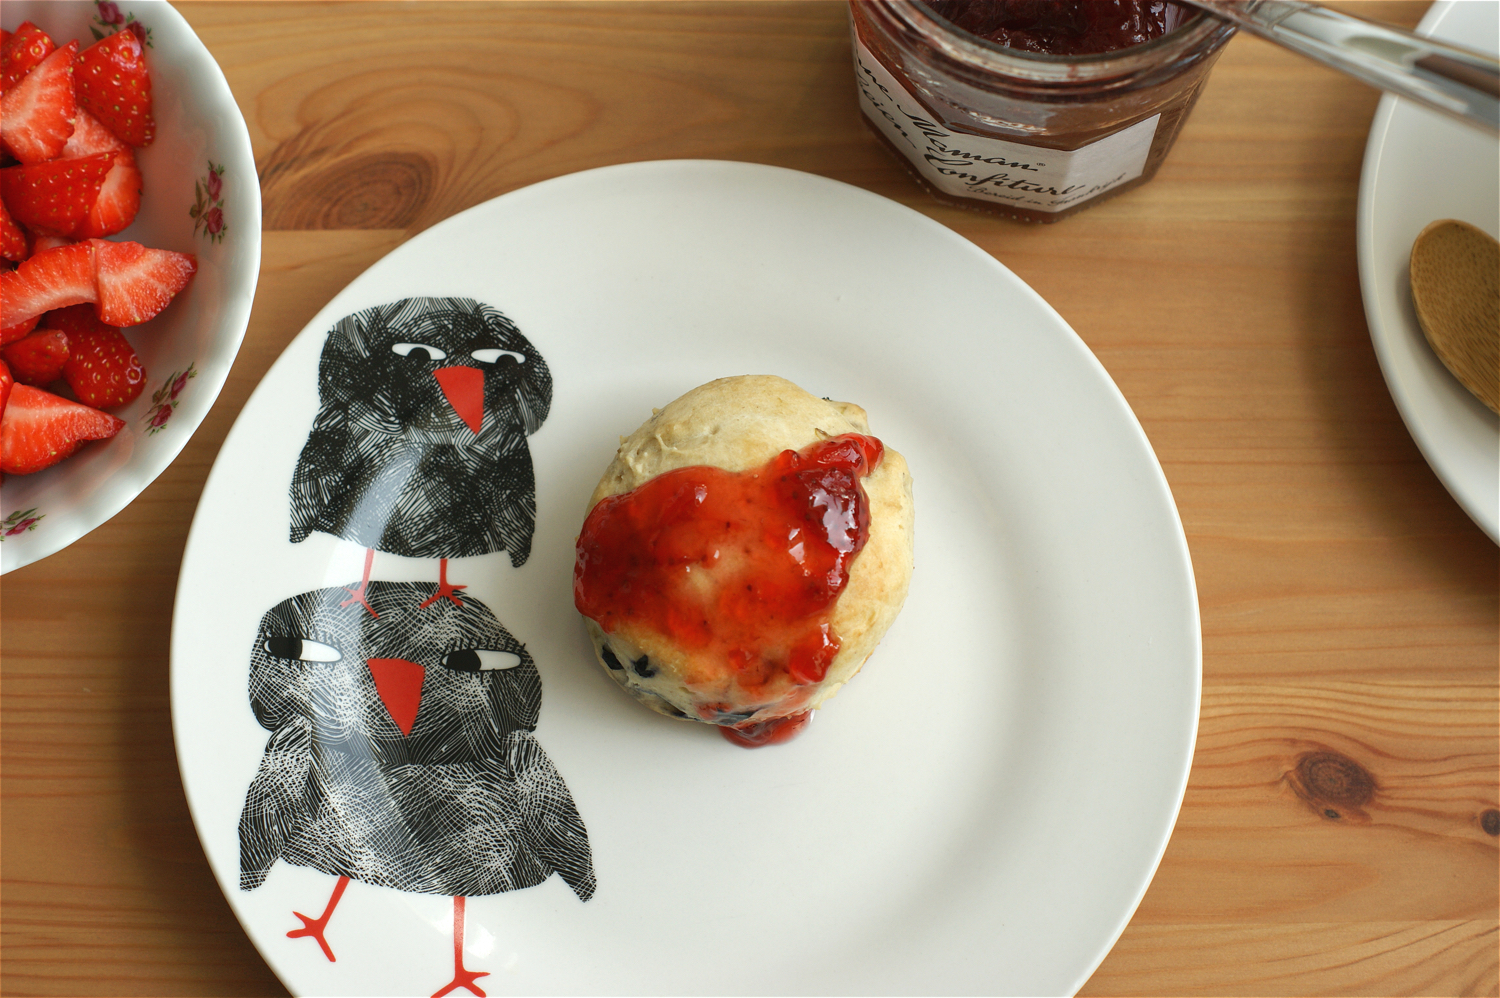 scone-with-strawberry-jam